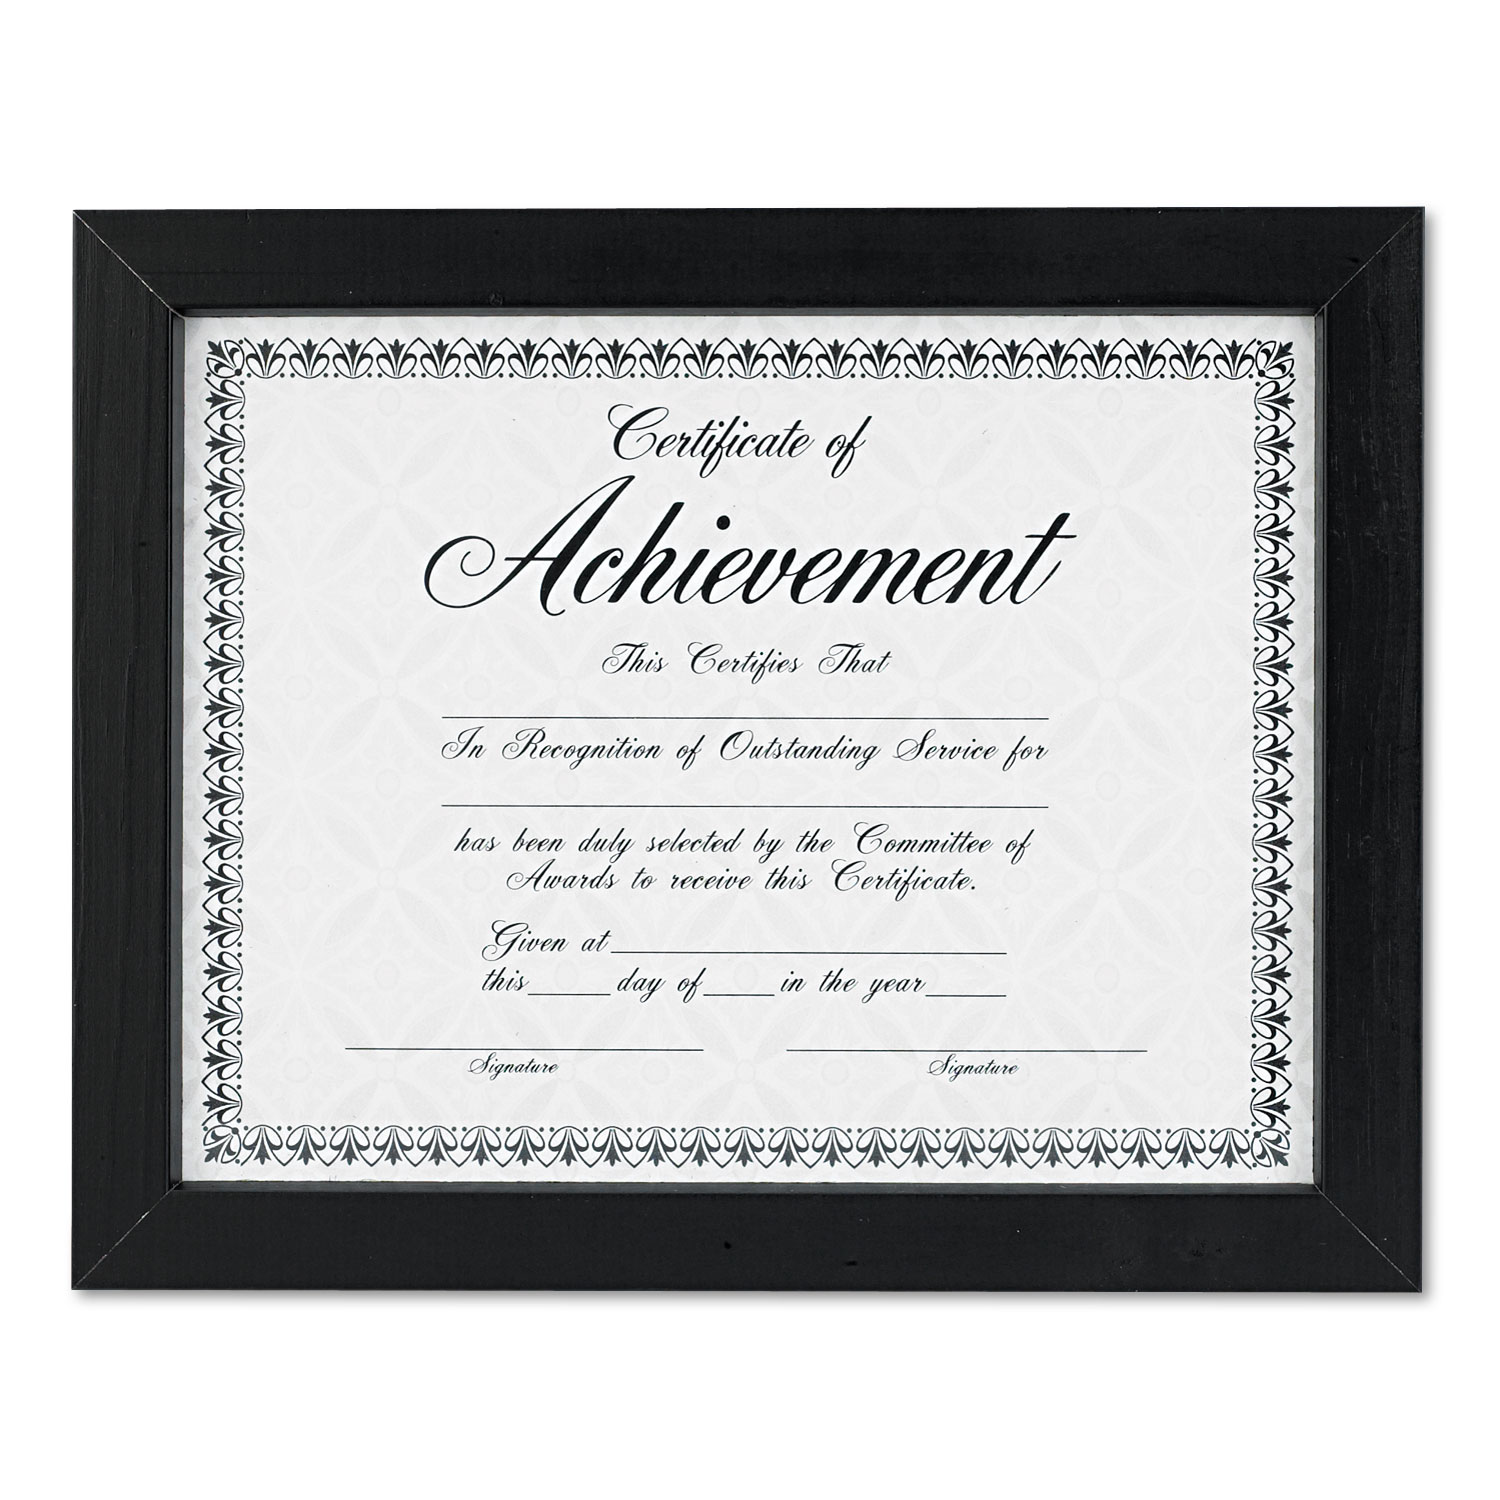 document certificate frames by dax daxn15832 ontimesupplies com